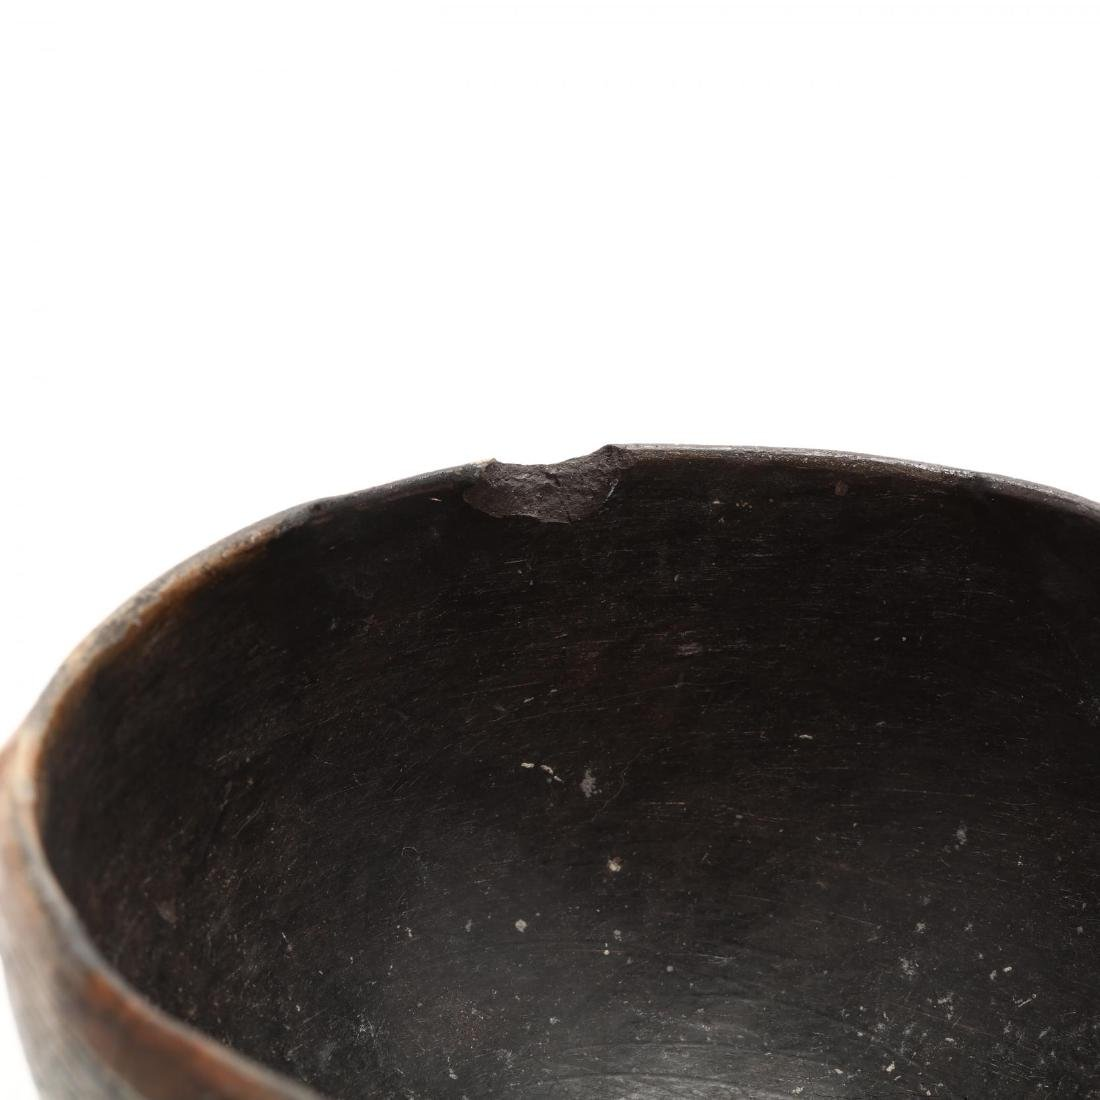 Cypriot Early Bronze Age Polished Black Ware Bowl - 2